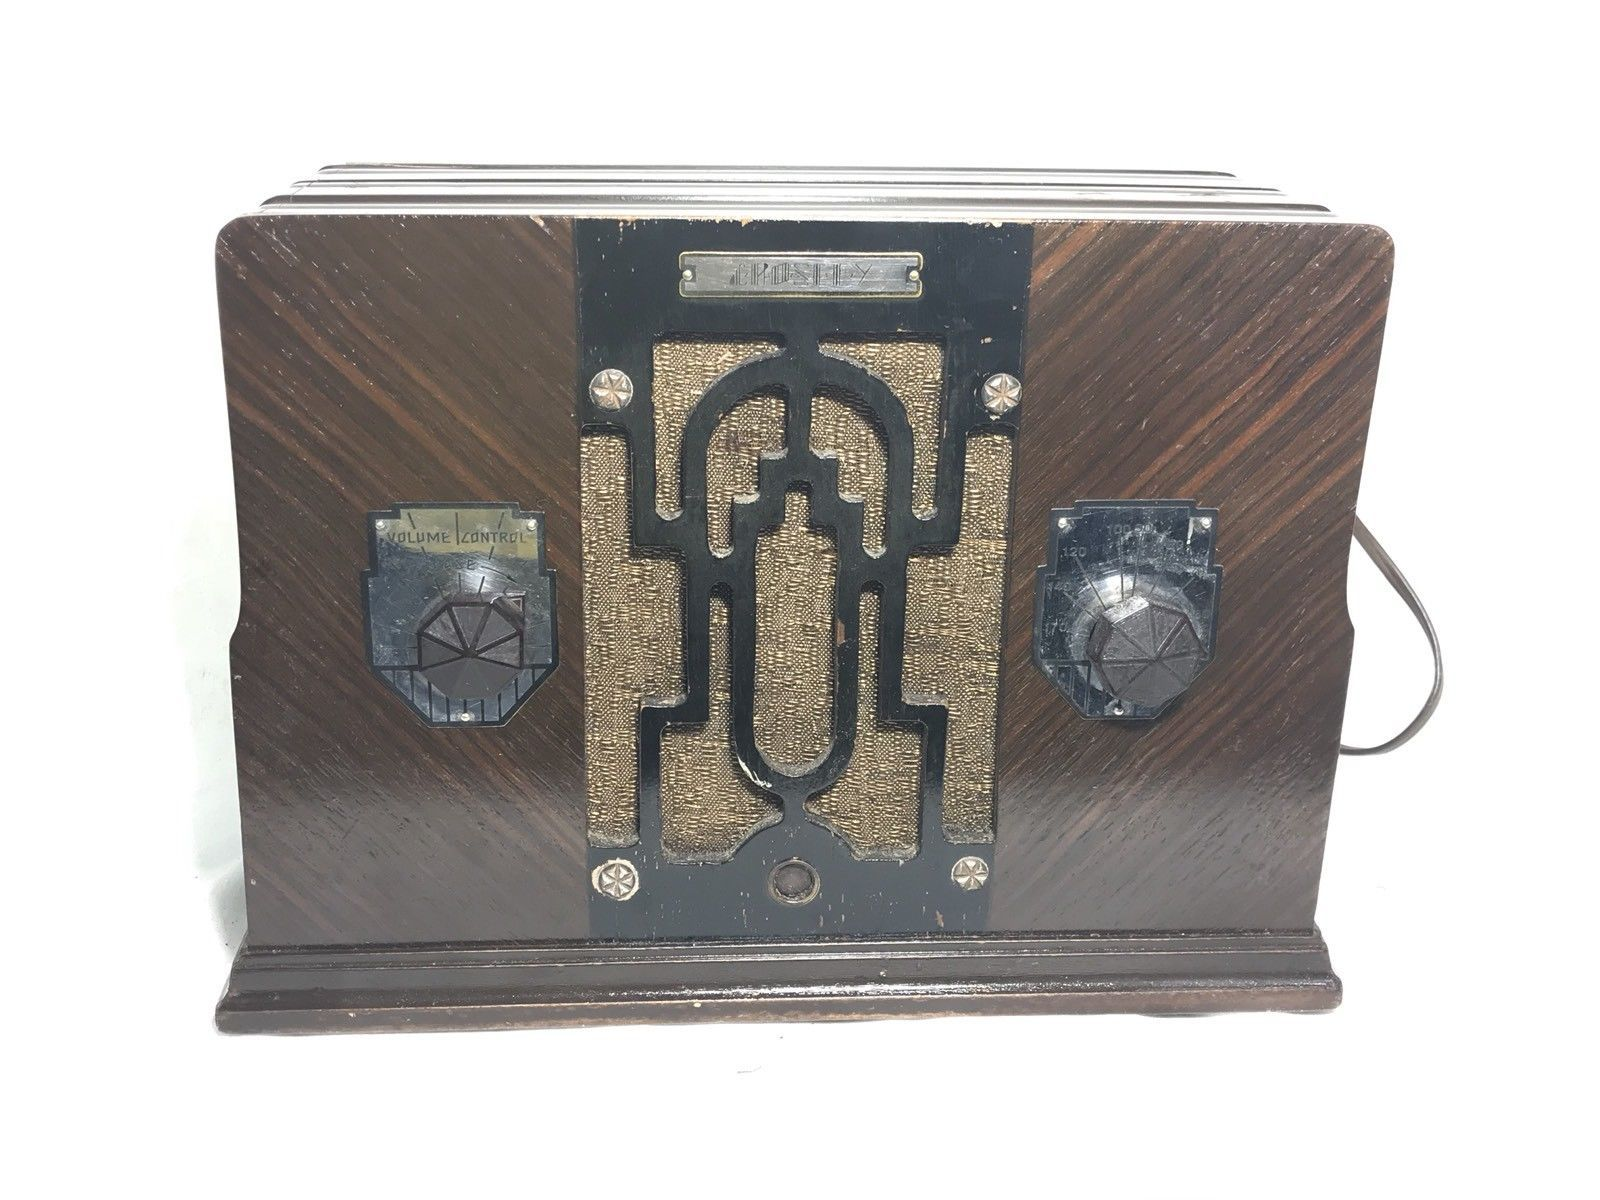 Crosley Radio Art Deco Crosley Radio Model 4 C 1 And 50 Similar Items